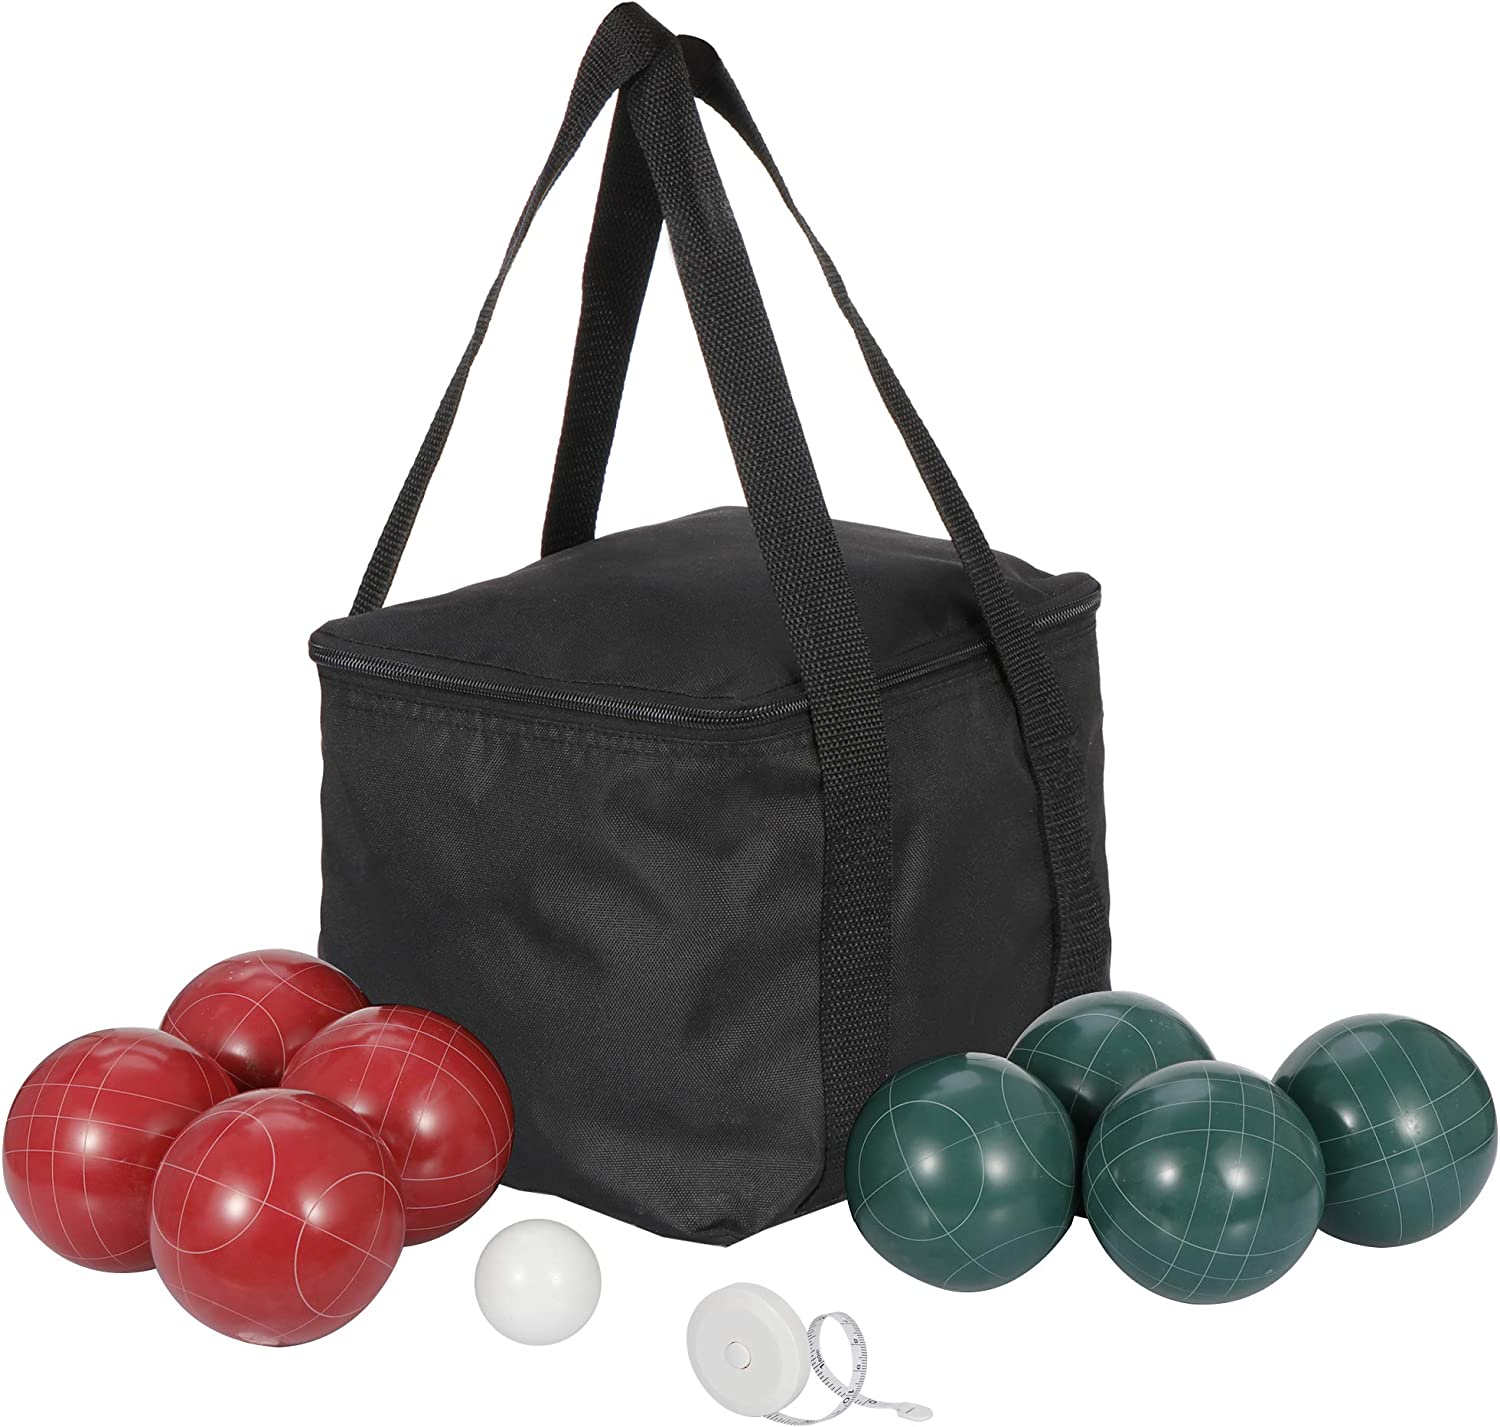 Smartchoices Bocce Ball Set with 8 Bocce Balls 100mm,1 Pallino Carry Bag and Measuring Rope for Beach Backyard Lawn or Outdoor Party Family Game All Weather